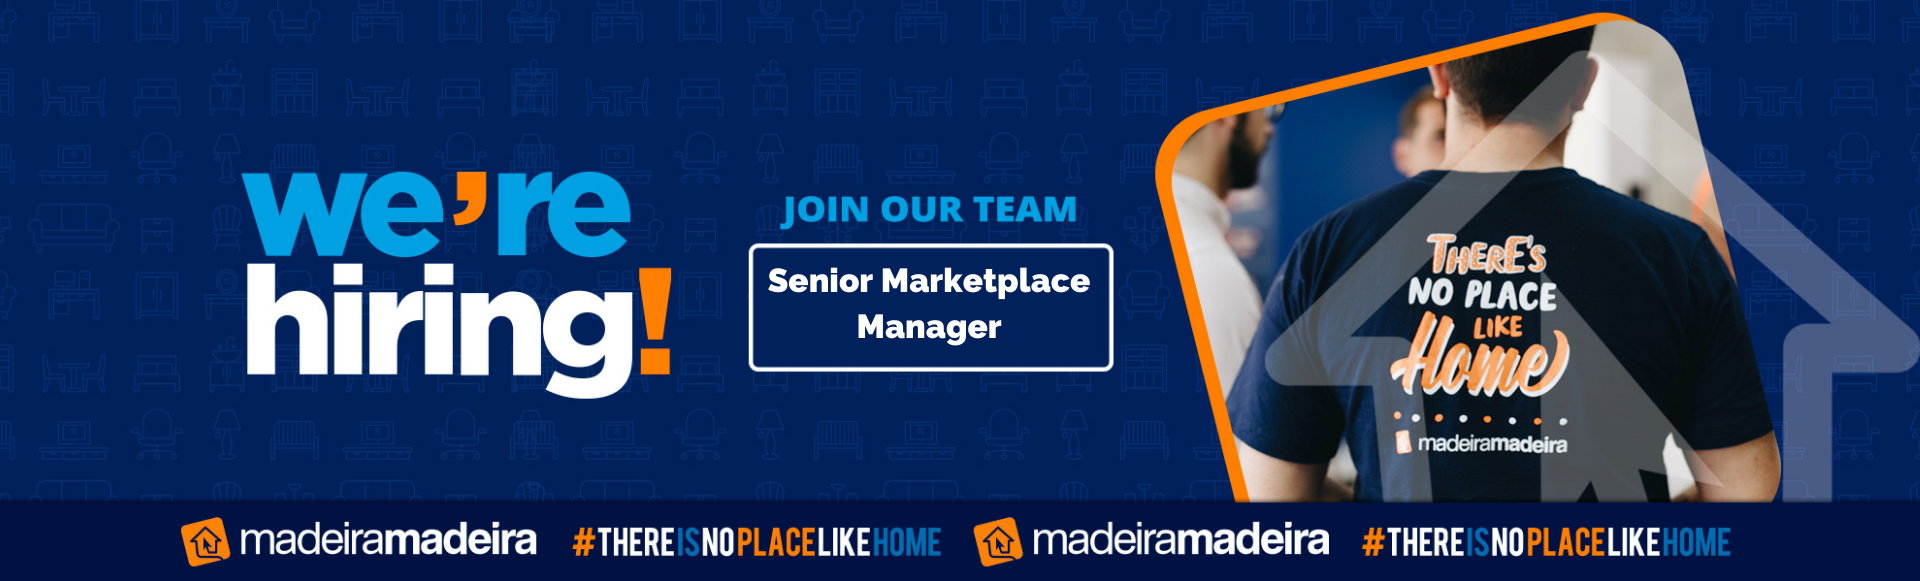 Marketplace Senior Manager